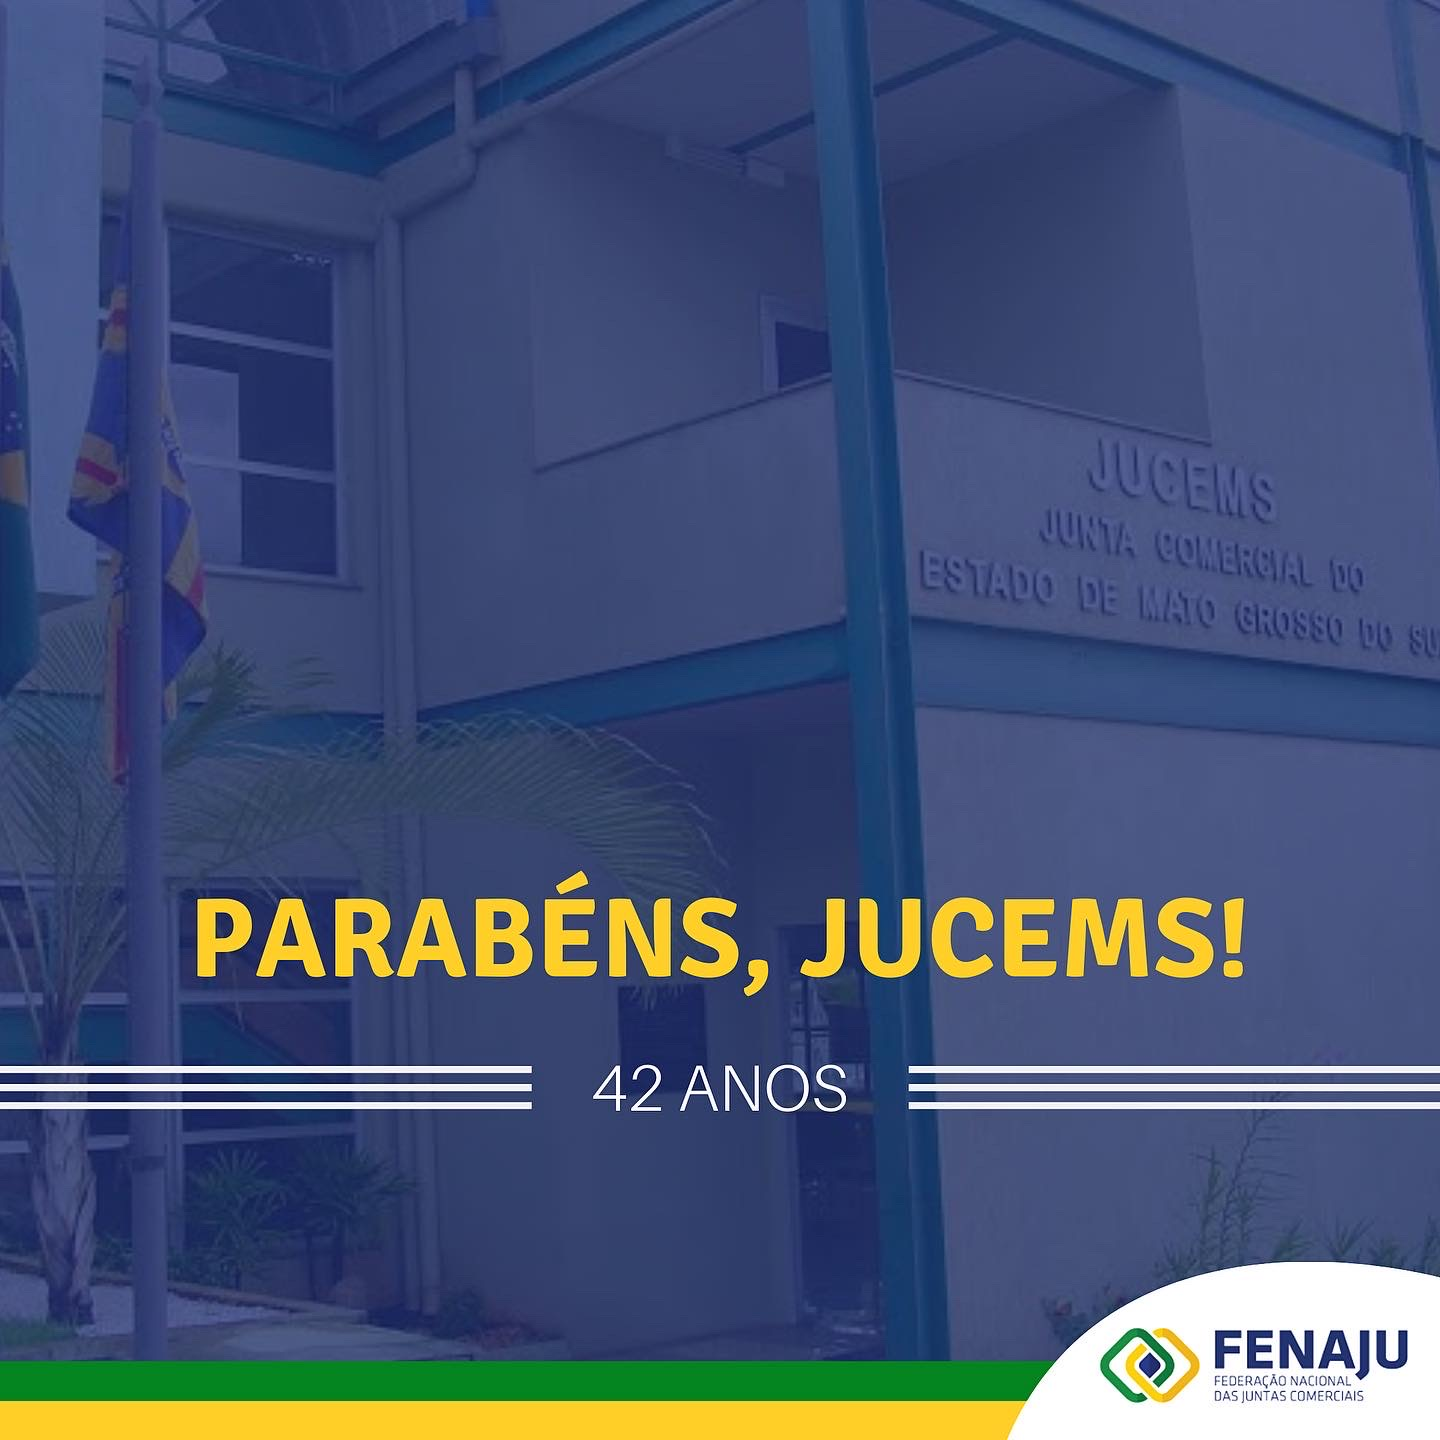 JUCEMS – 42 anos